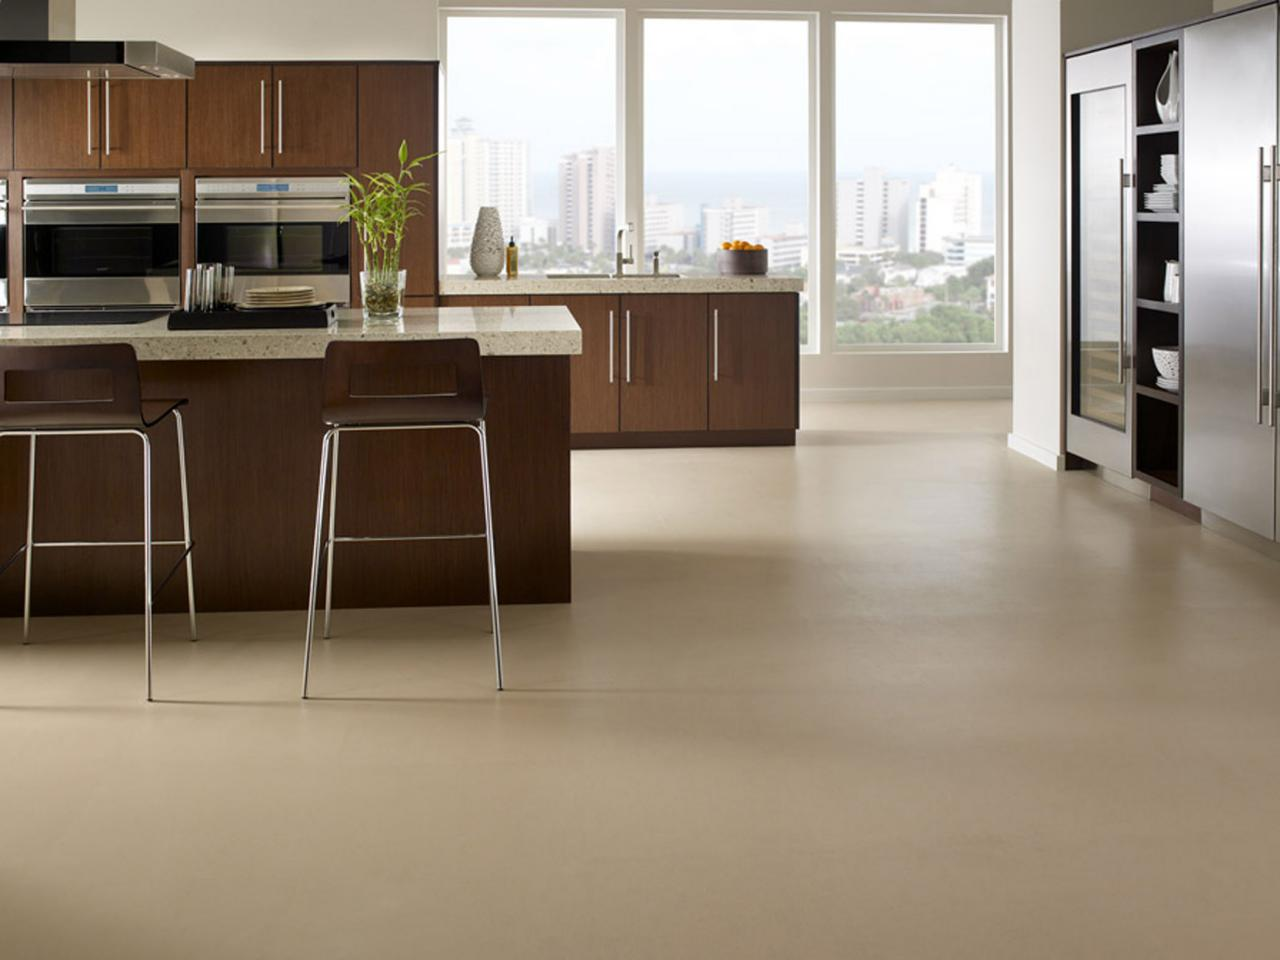 alternative kitchen floor ideas - Modern Kitchen Flooring Ideas